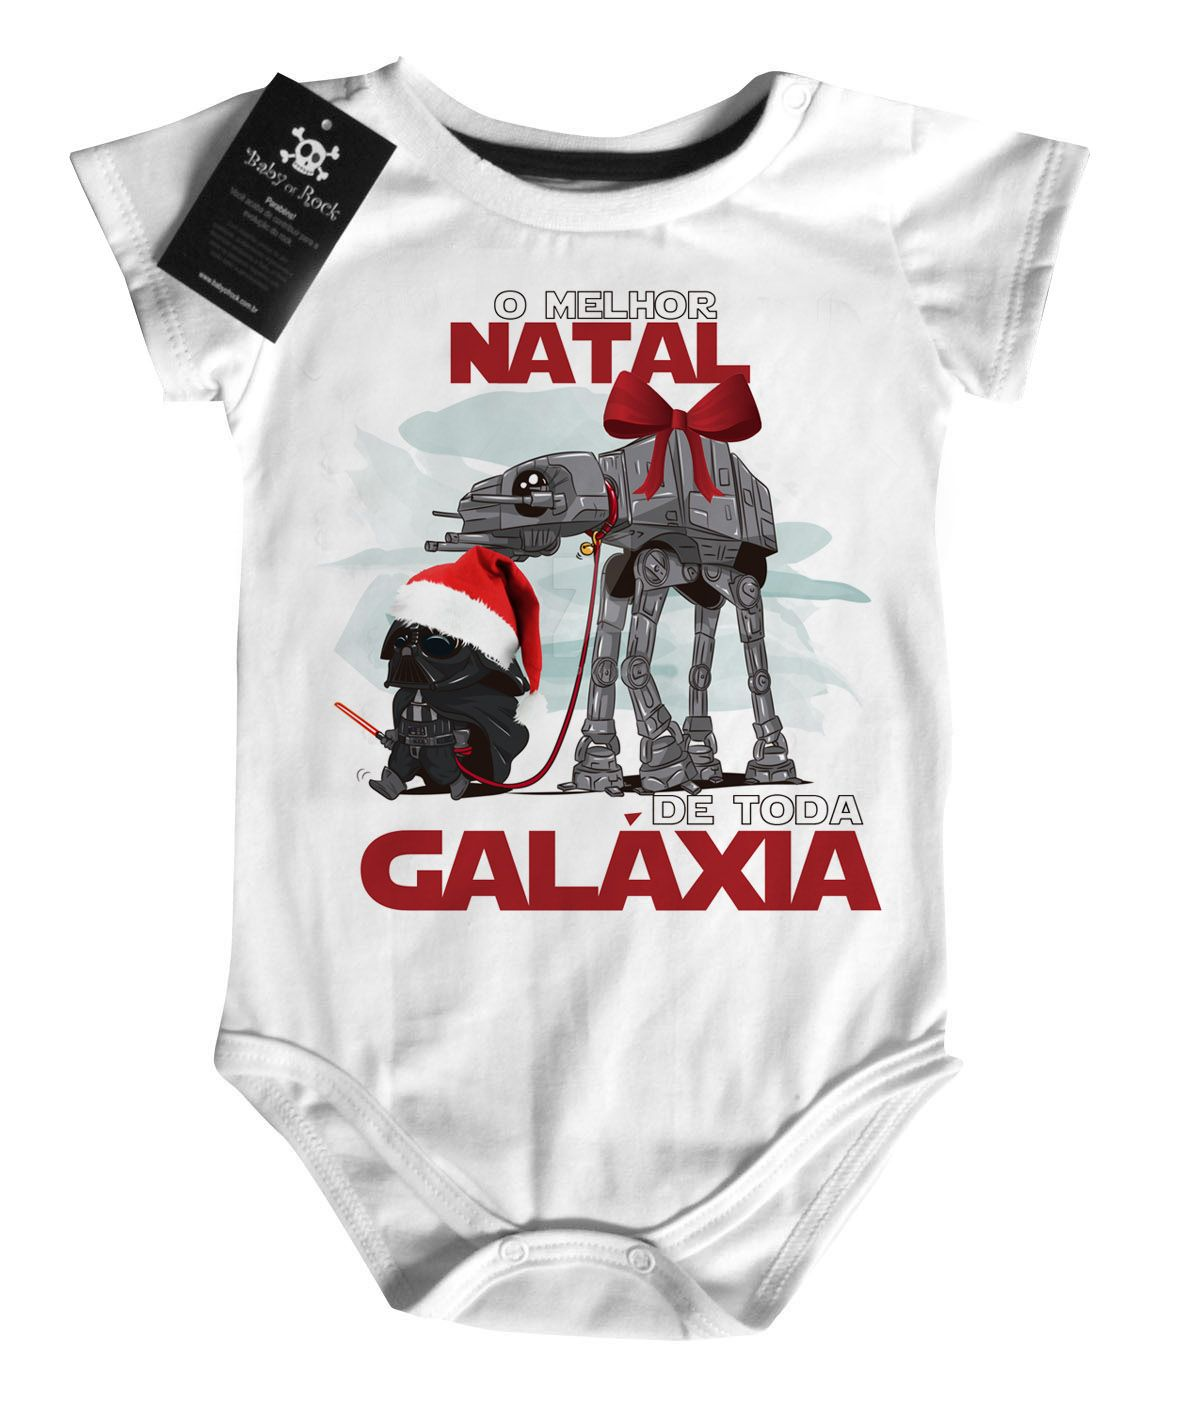 Body Bebe de  Rock Natal - Star Wars - White  - Baby Monster S/A